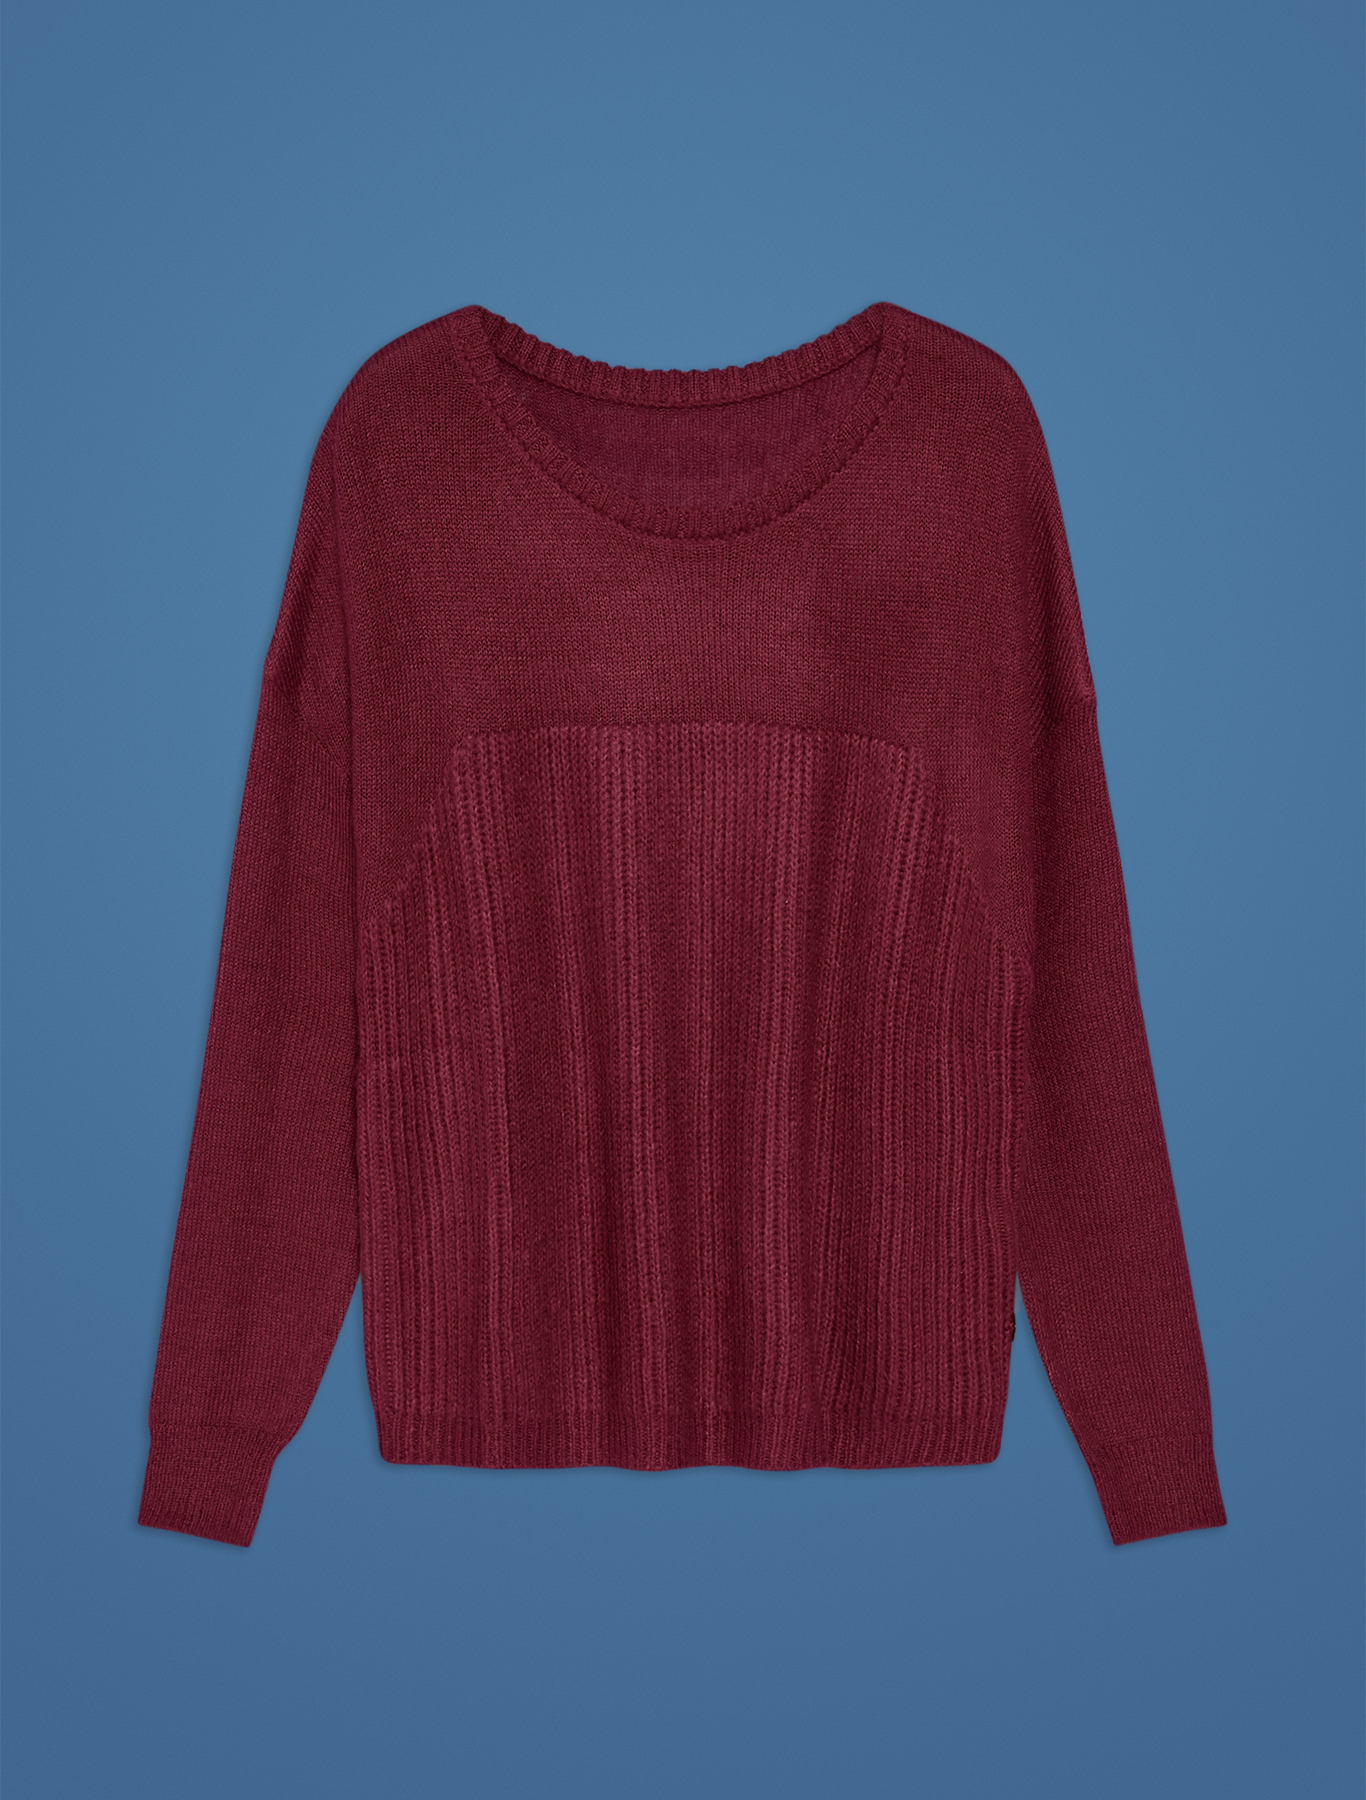 English rib knit jumper - plum - pennyblack